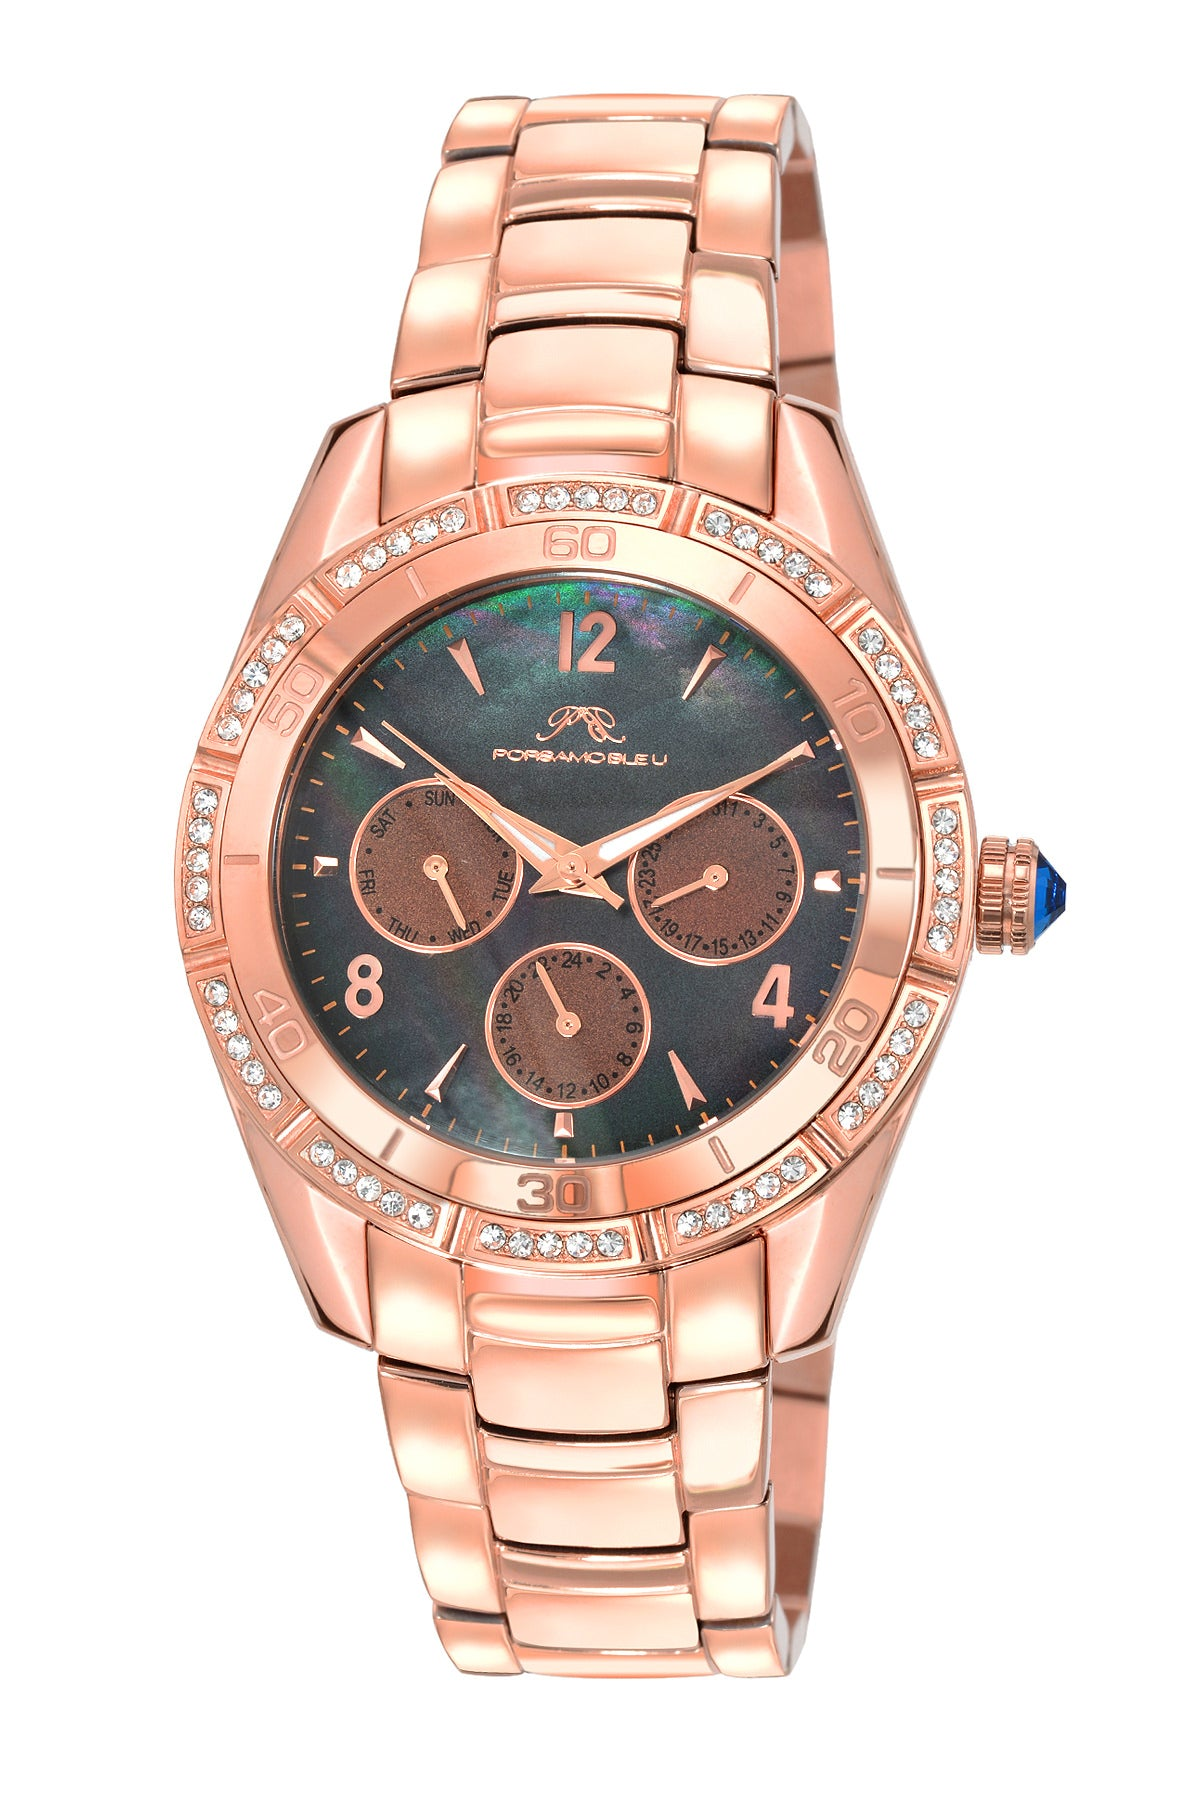 Porsamo Bleu Valentina luxury women's stainless steel watch, rose, black 542CVAS